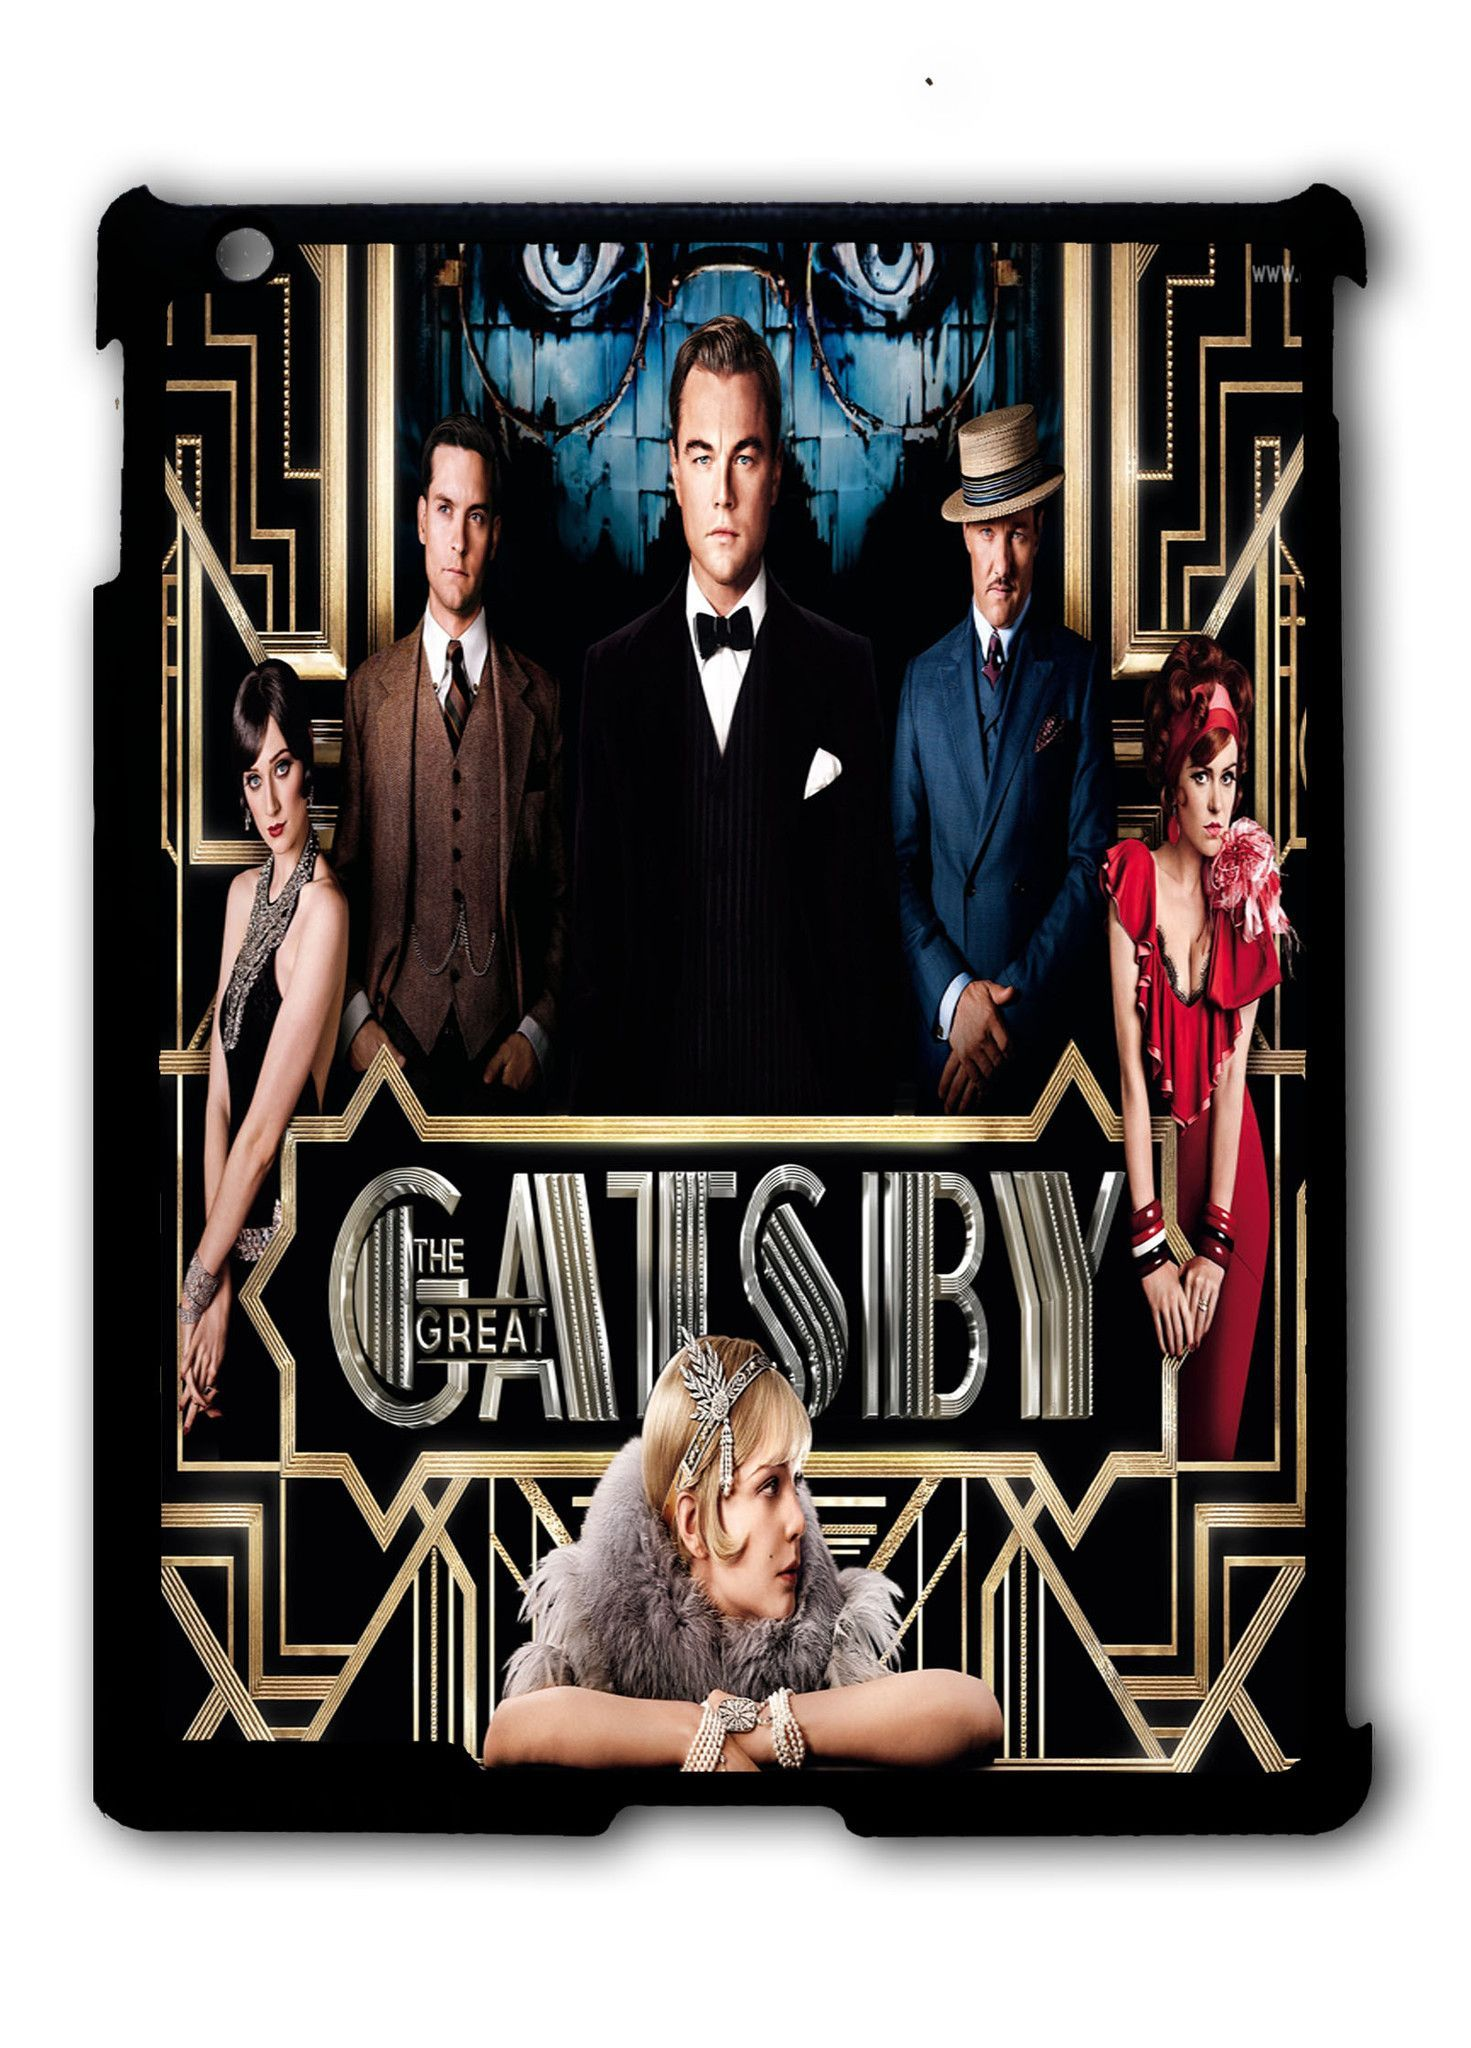 The Great Gatsby Patterns iPad 2 3 4, iPad Mini 1 2 3 , iPad Air 1 2